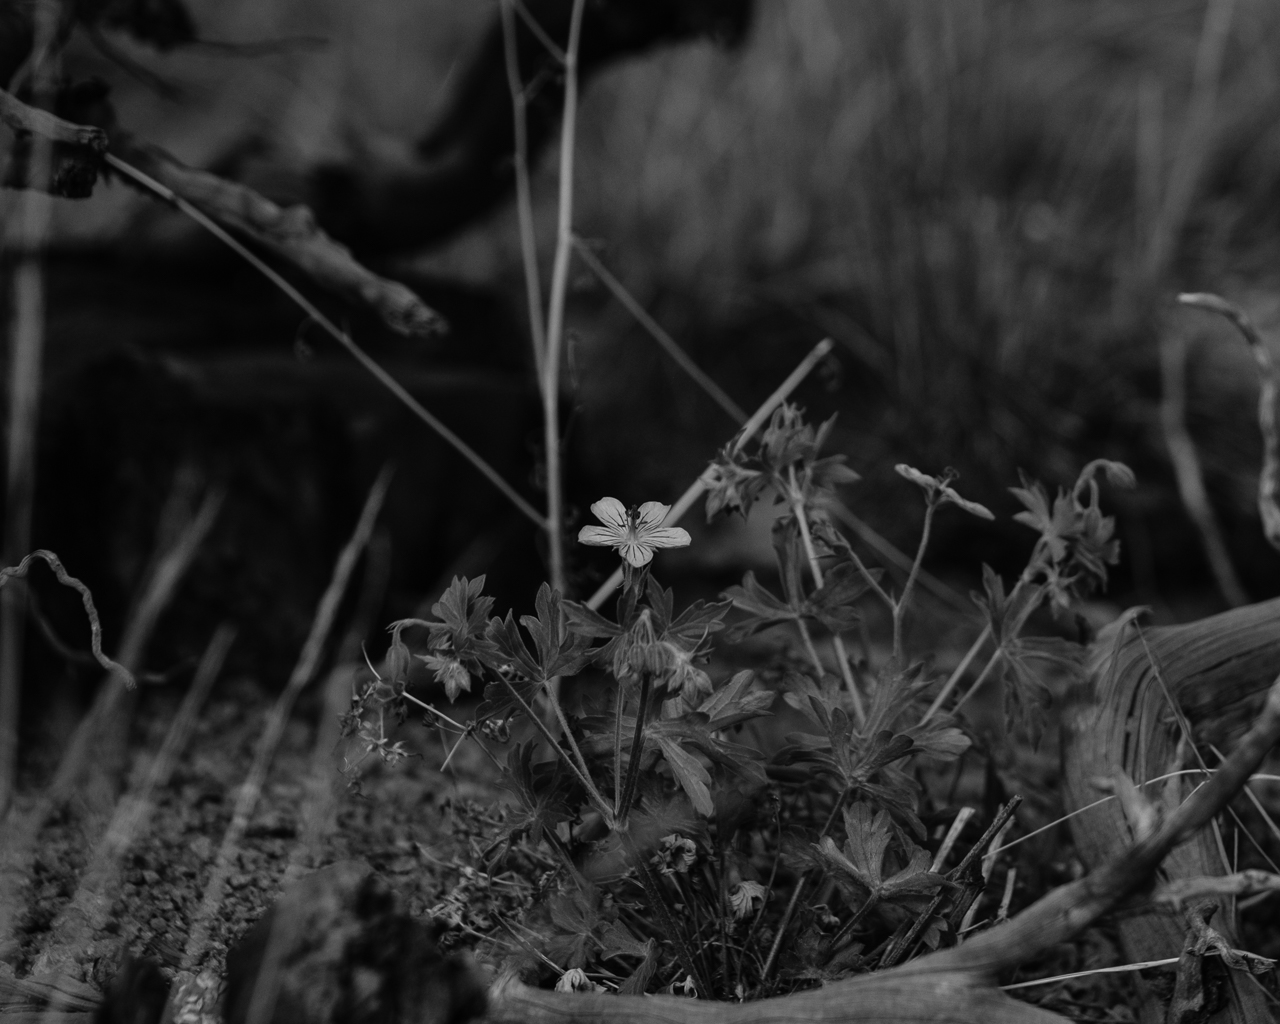 Day 195 - 365 Day B&W Photo Challenge - Wildflower has is in full bloom. - Fuji X-T3, XF 50-140mm f/2.8, Acros Film Simulation